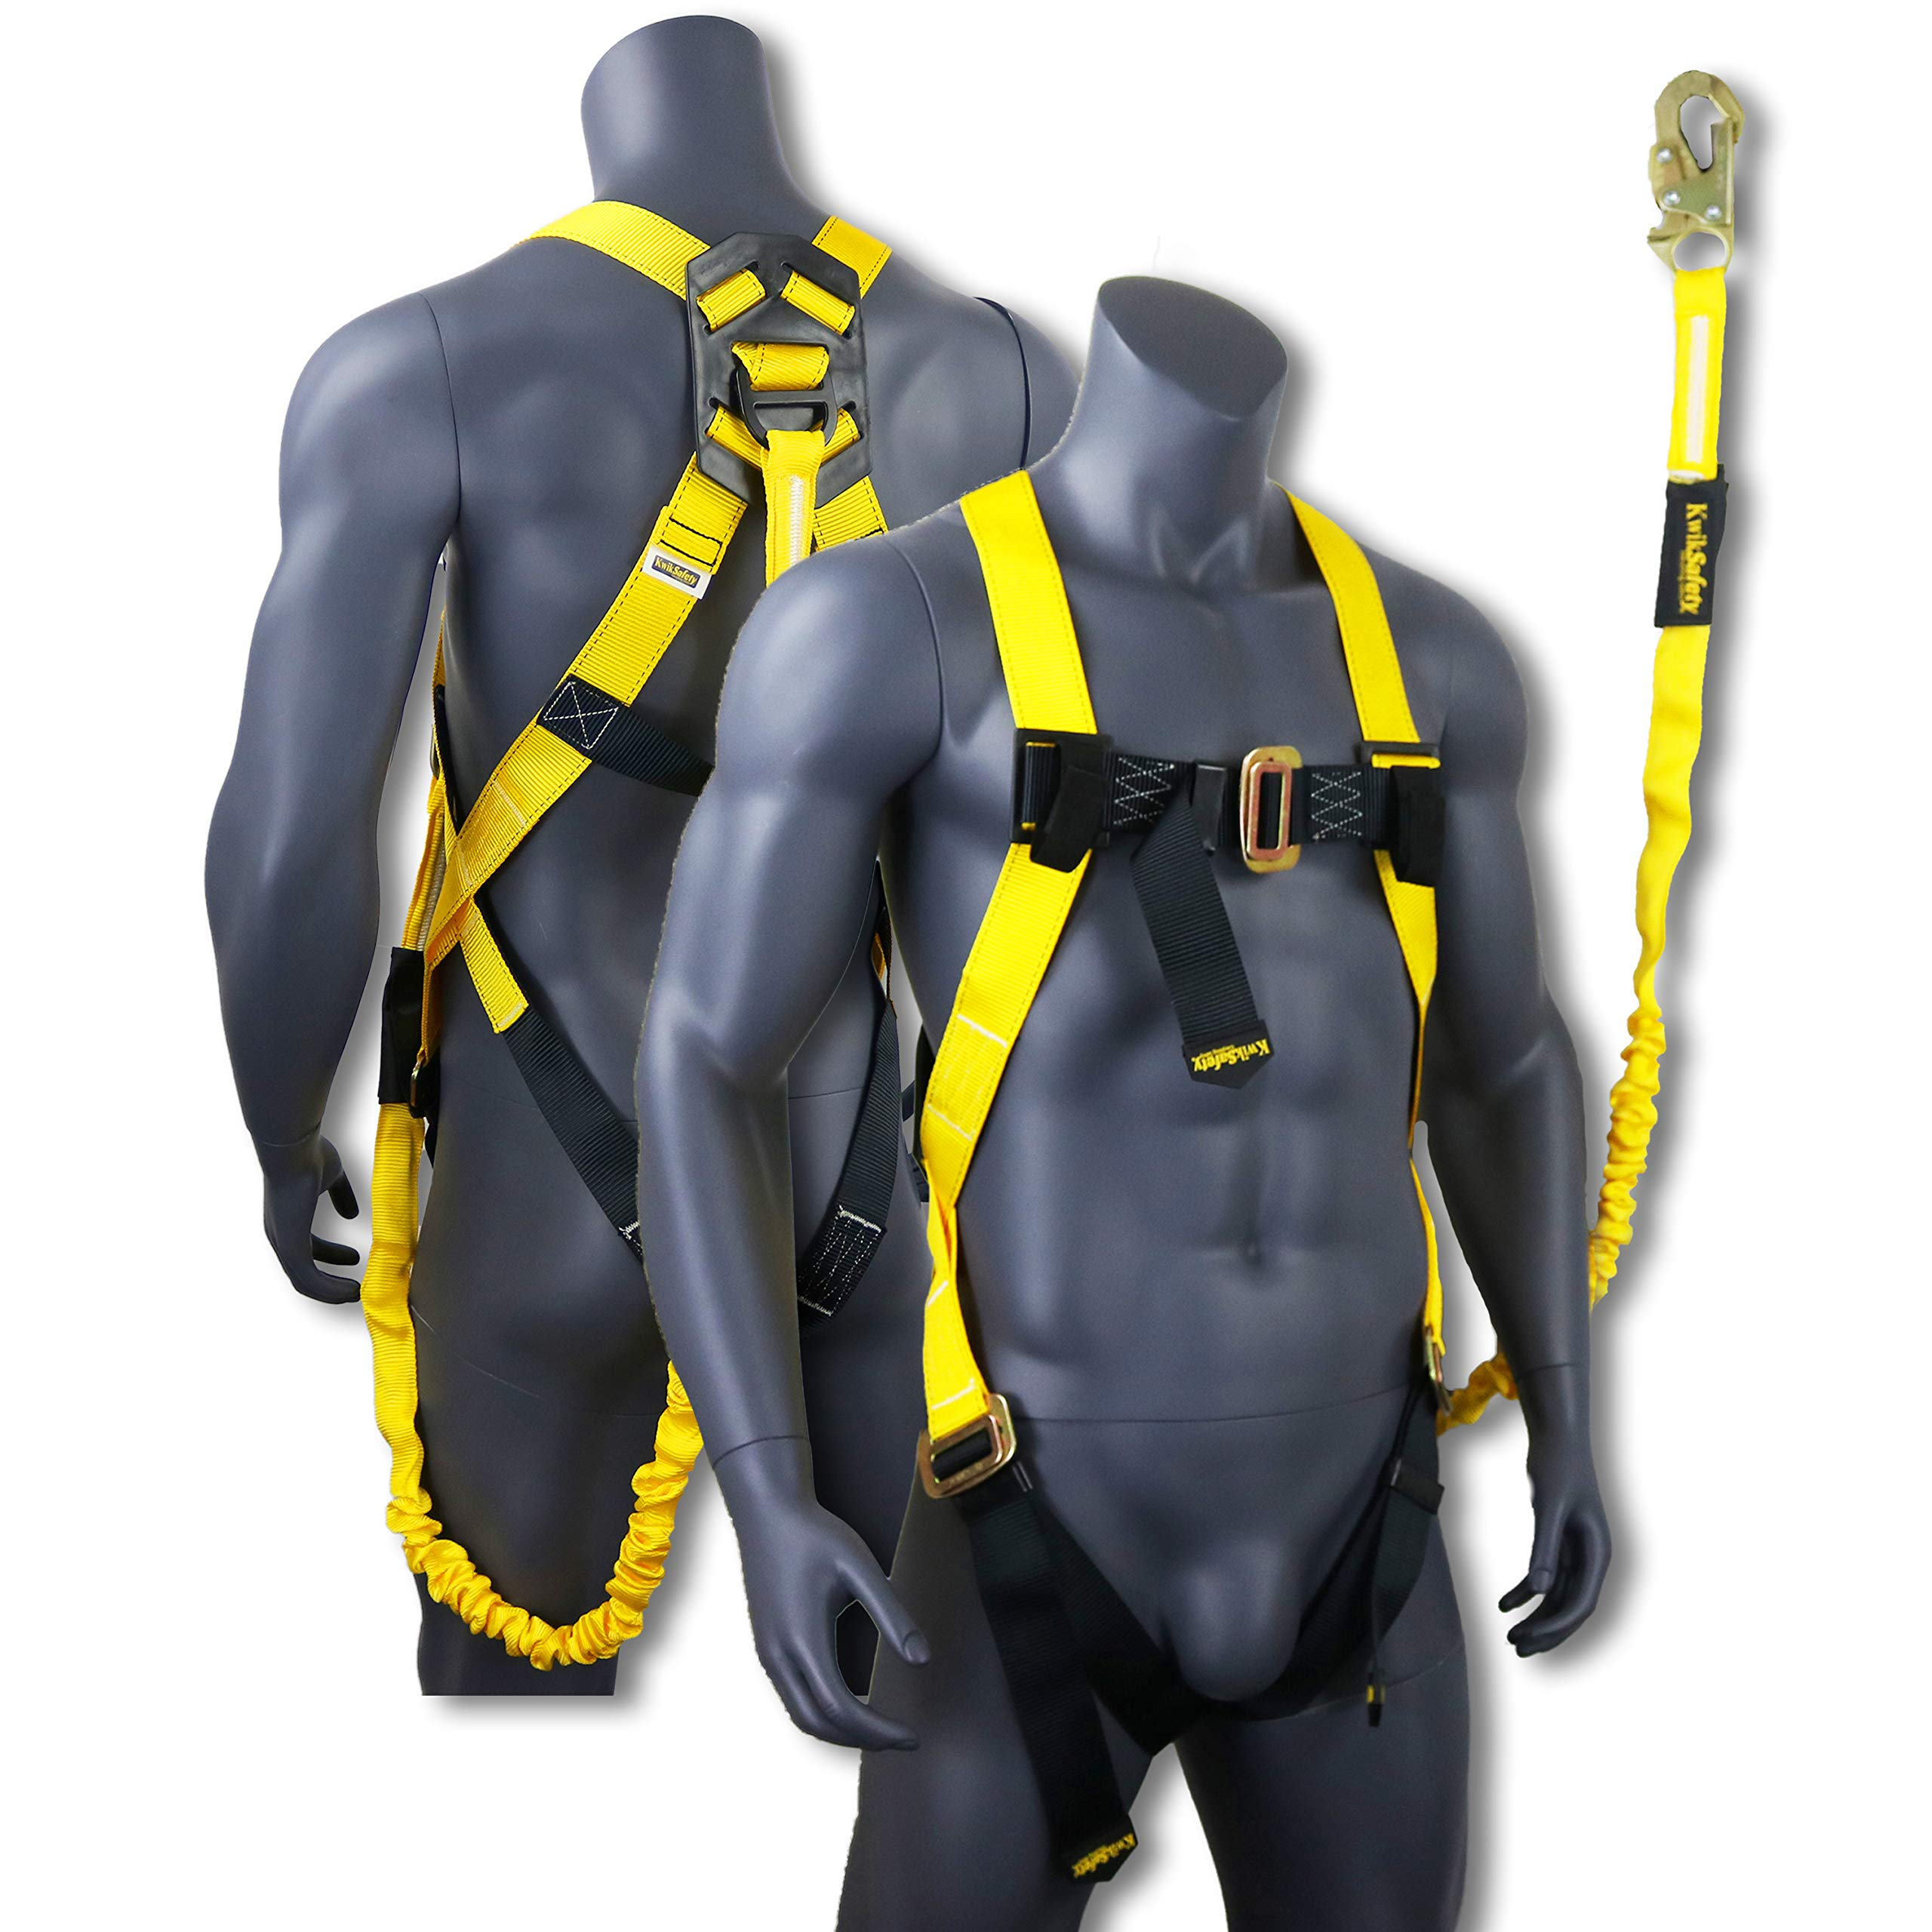 KwikSafety Scorpion | Safety Harness w/Attached 6ft. Tubular Lanyard on Back | OSHA Approved ANSI Compliant Fall Protection | Internal Shock Absorbing Lanyard | Construction Carpenter Scaffolding … by KwikSafety